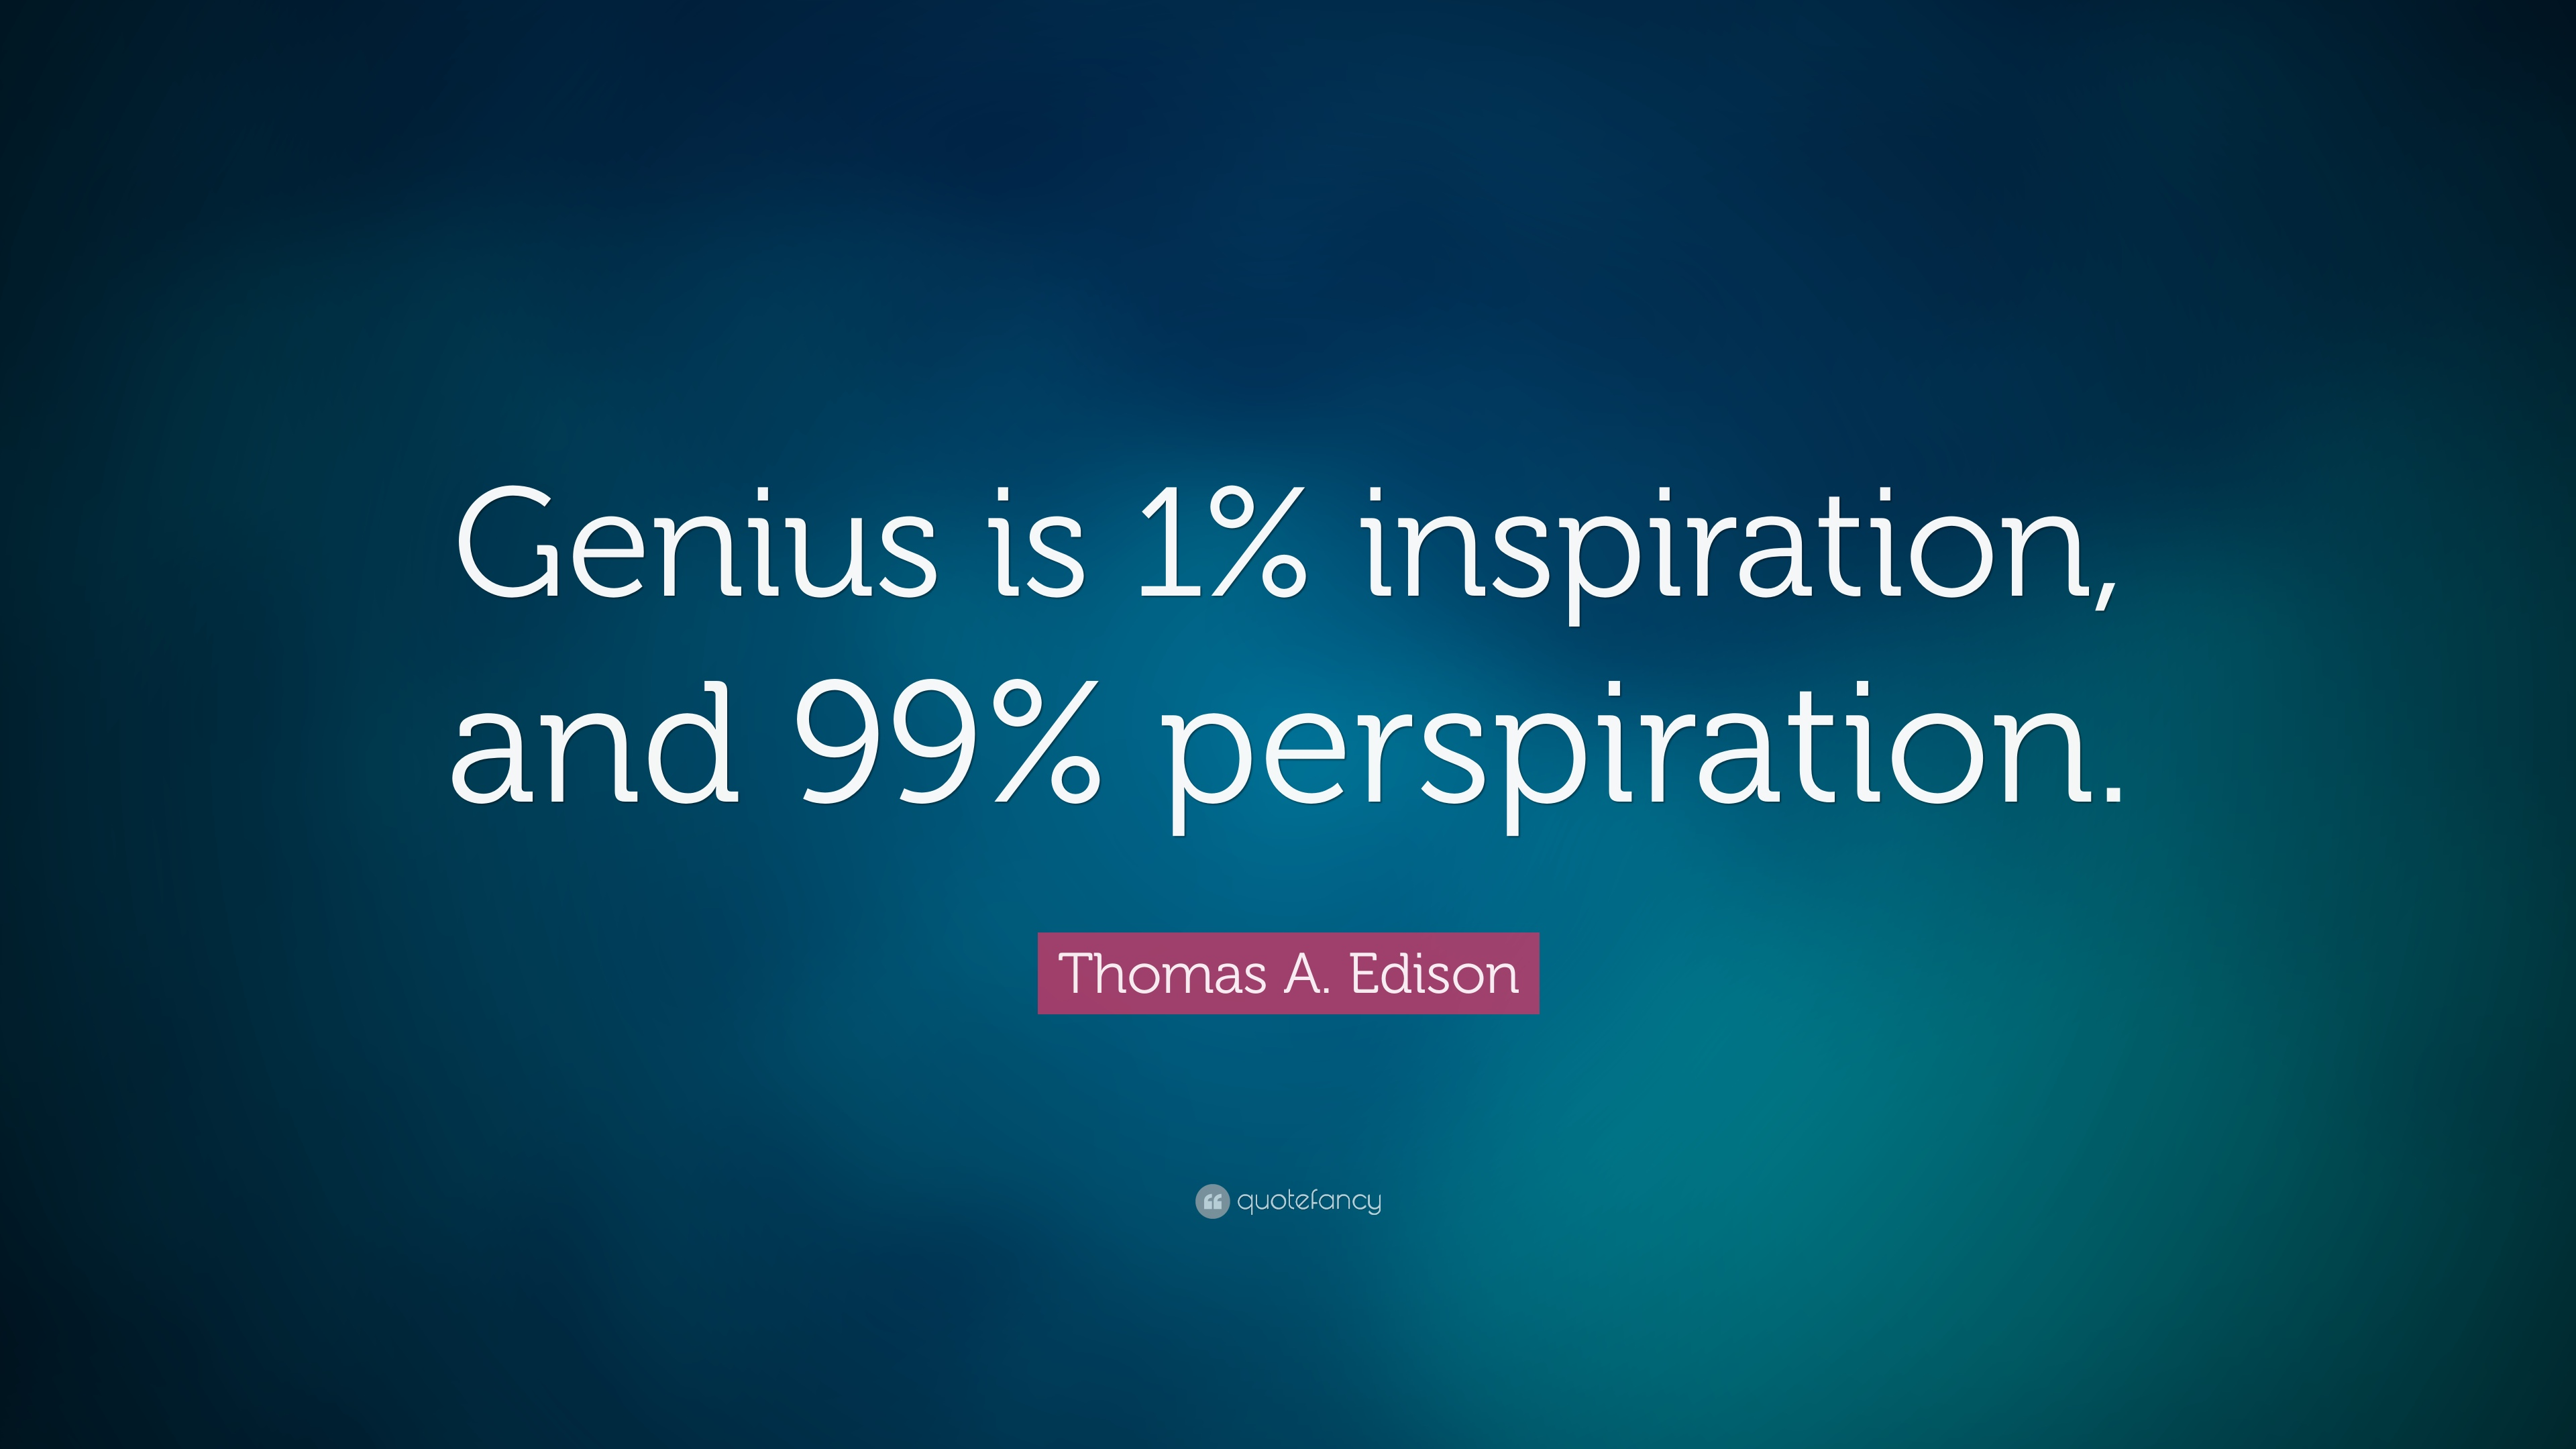 Genius Is One Percent Inspiration, Ninety-Nine Percent Perspiration